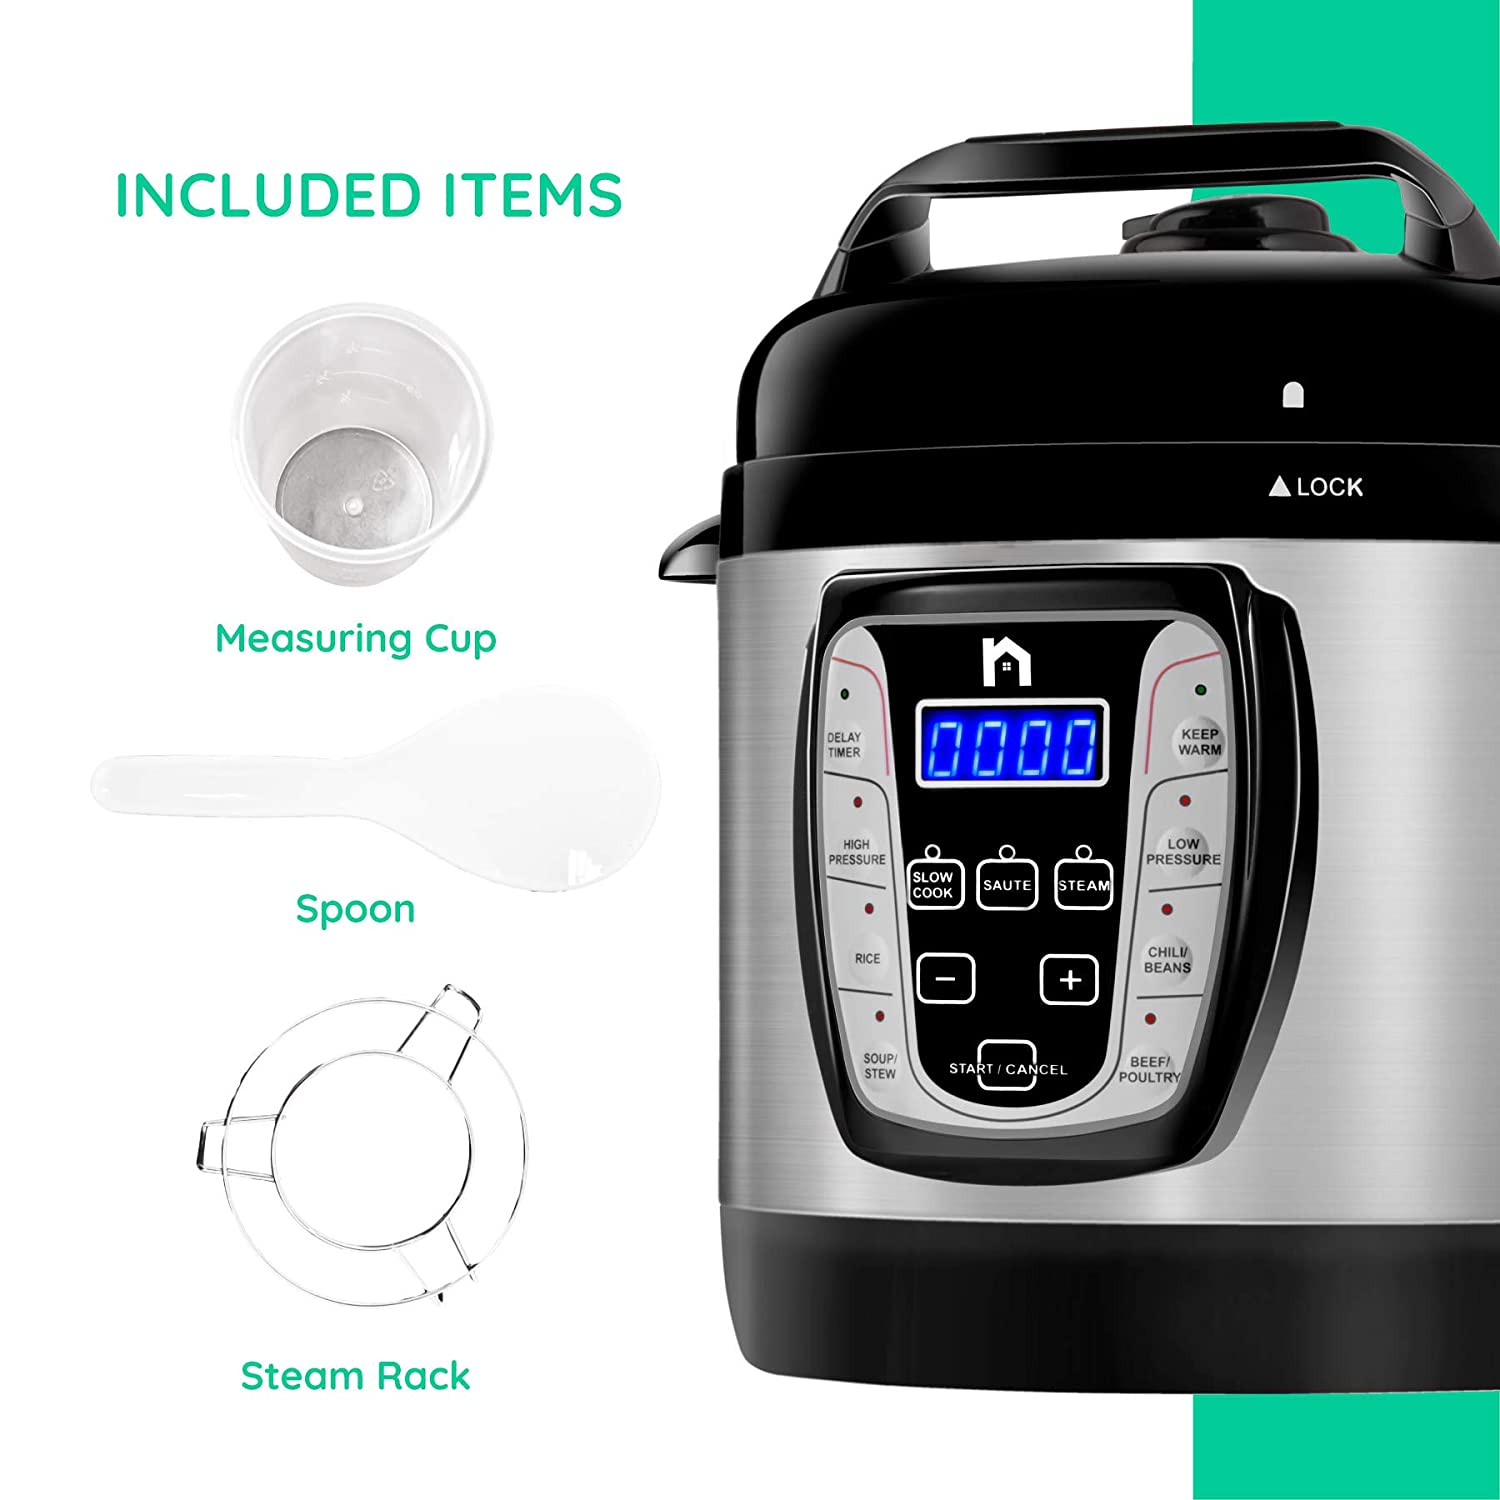 New House Kitchen Electric 9-in-1 Programmable Multicooker Prepare Meals in an Instant Saut/é Pan Multifunctional Rice Cooker Steamer Dishwasher Safe Aluminum Pot Soup Maker 2.5 Quart